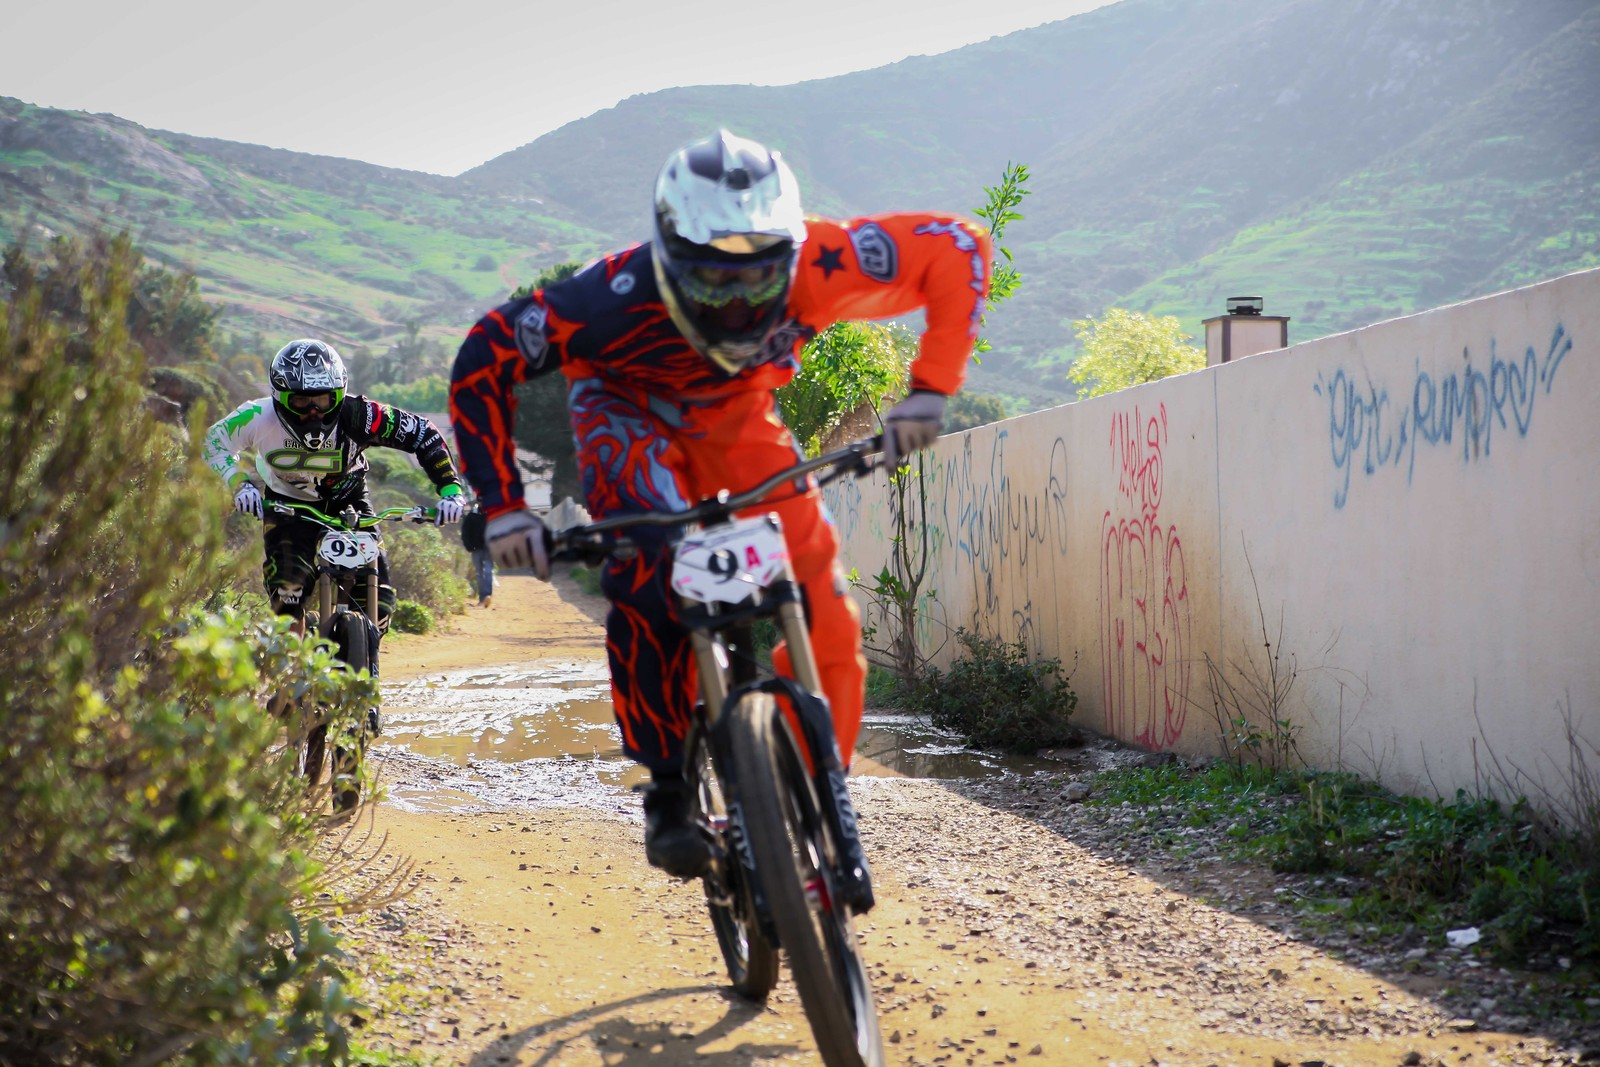 the chase at the wall! GET EM! - GnarHuck - Mountain Biking Pictures - Vital MTB